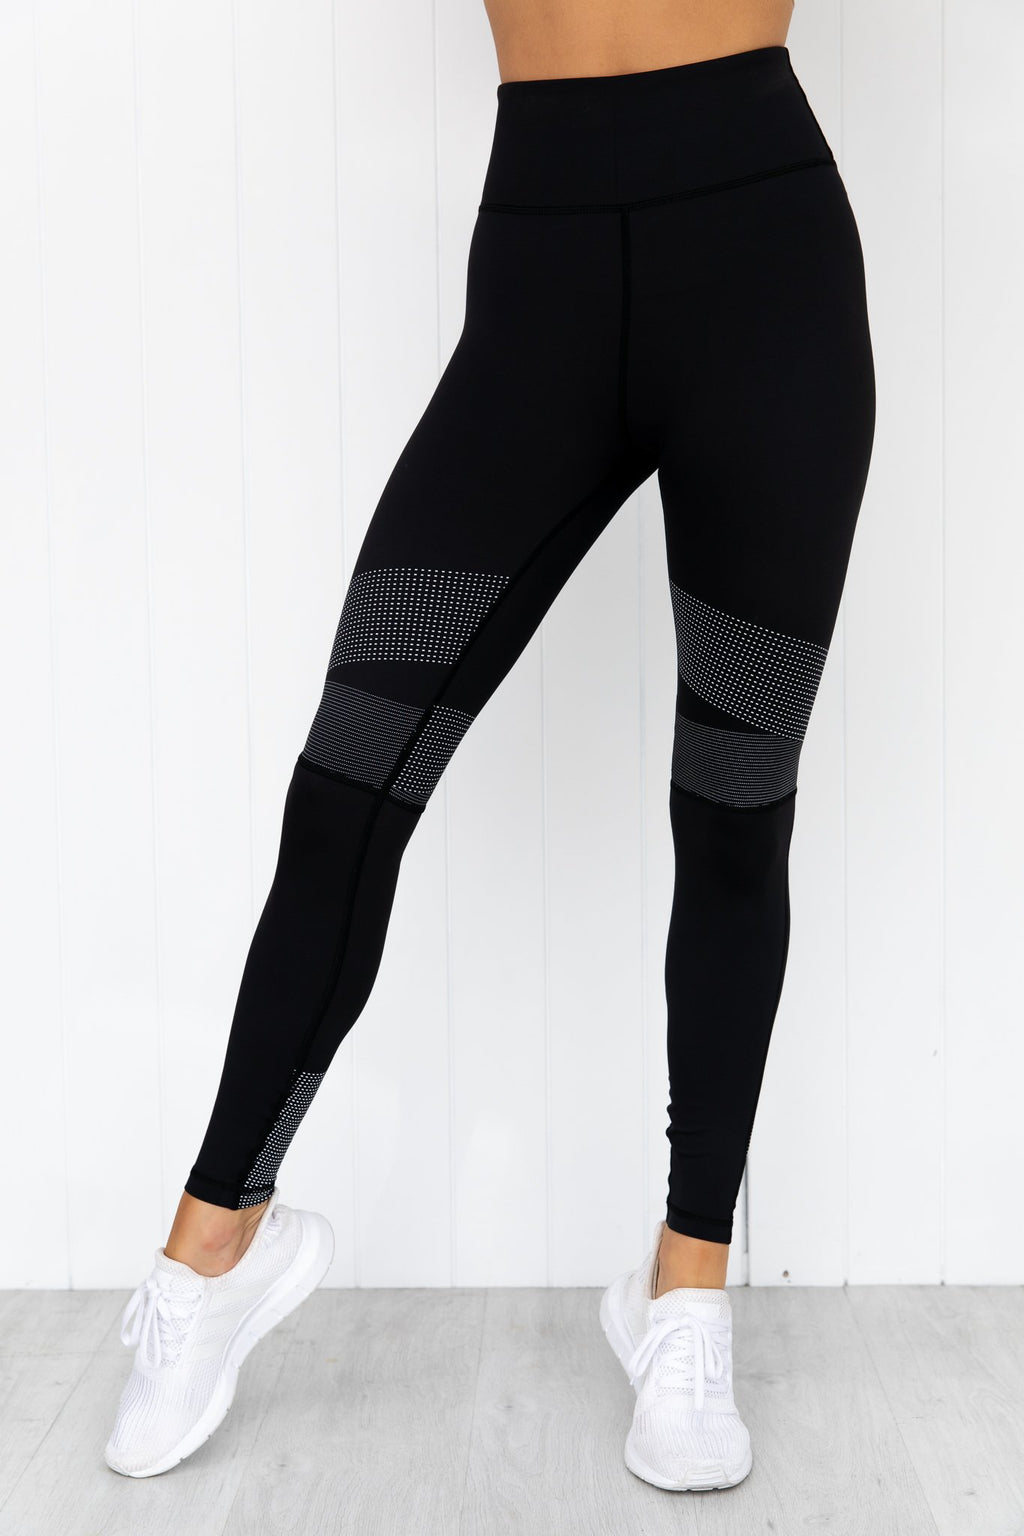 Luca XR Phantom Jet Leggings